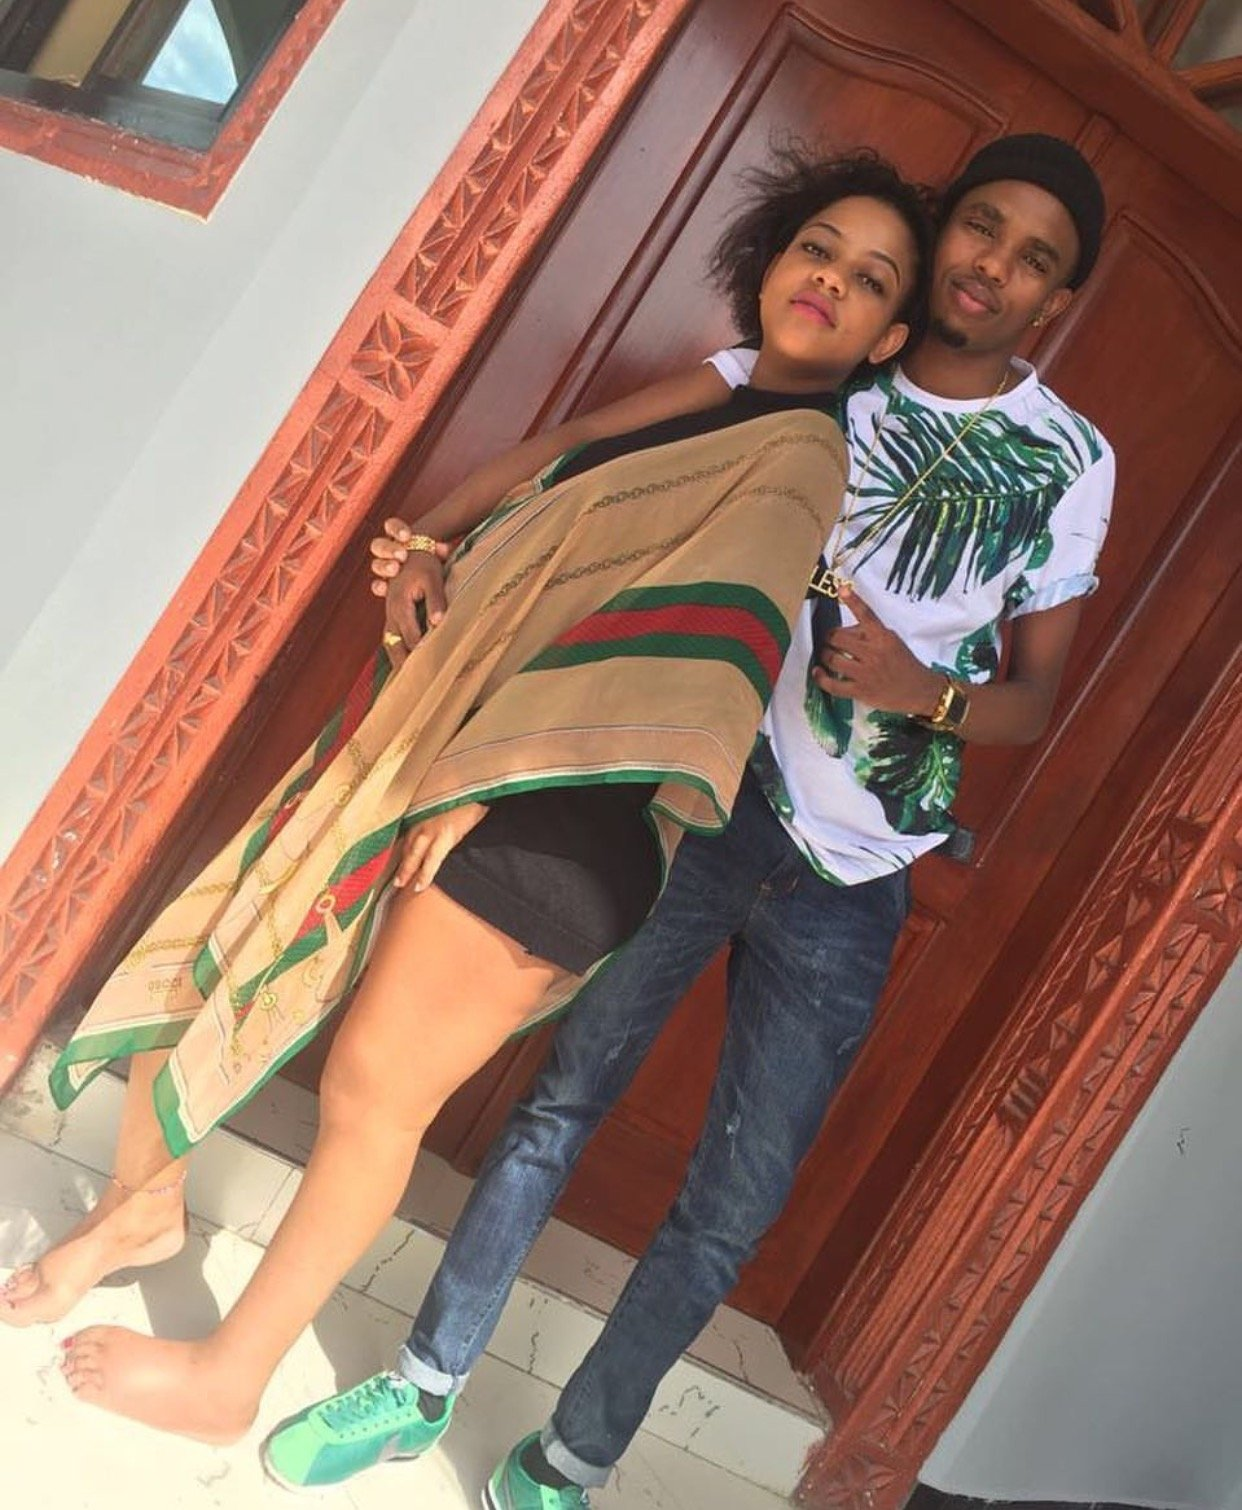 Rayvanny's girlfriend steps out in a tiny short as she flaunts her bulging baby bump